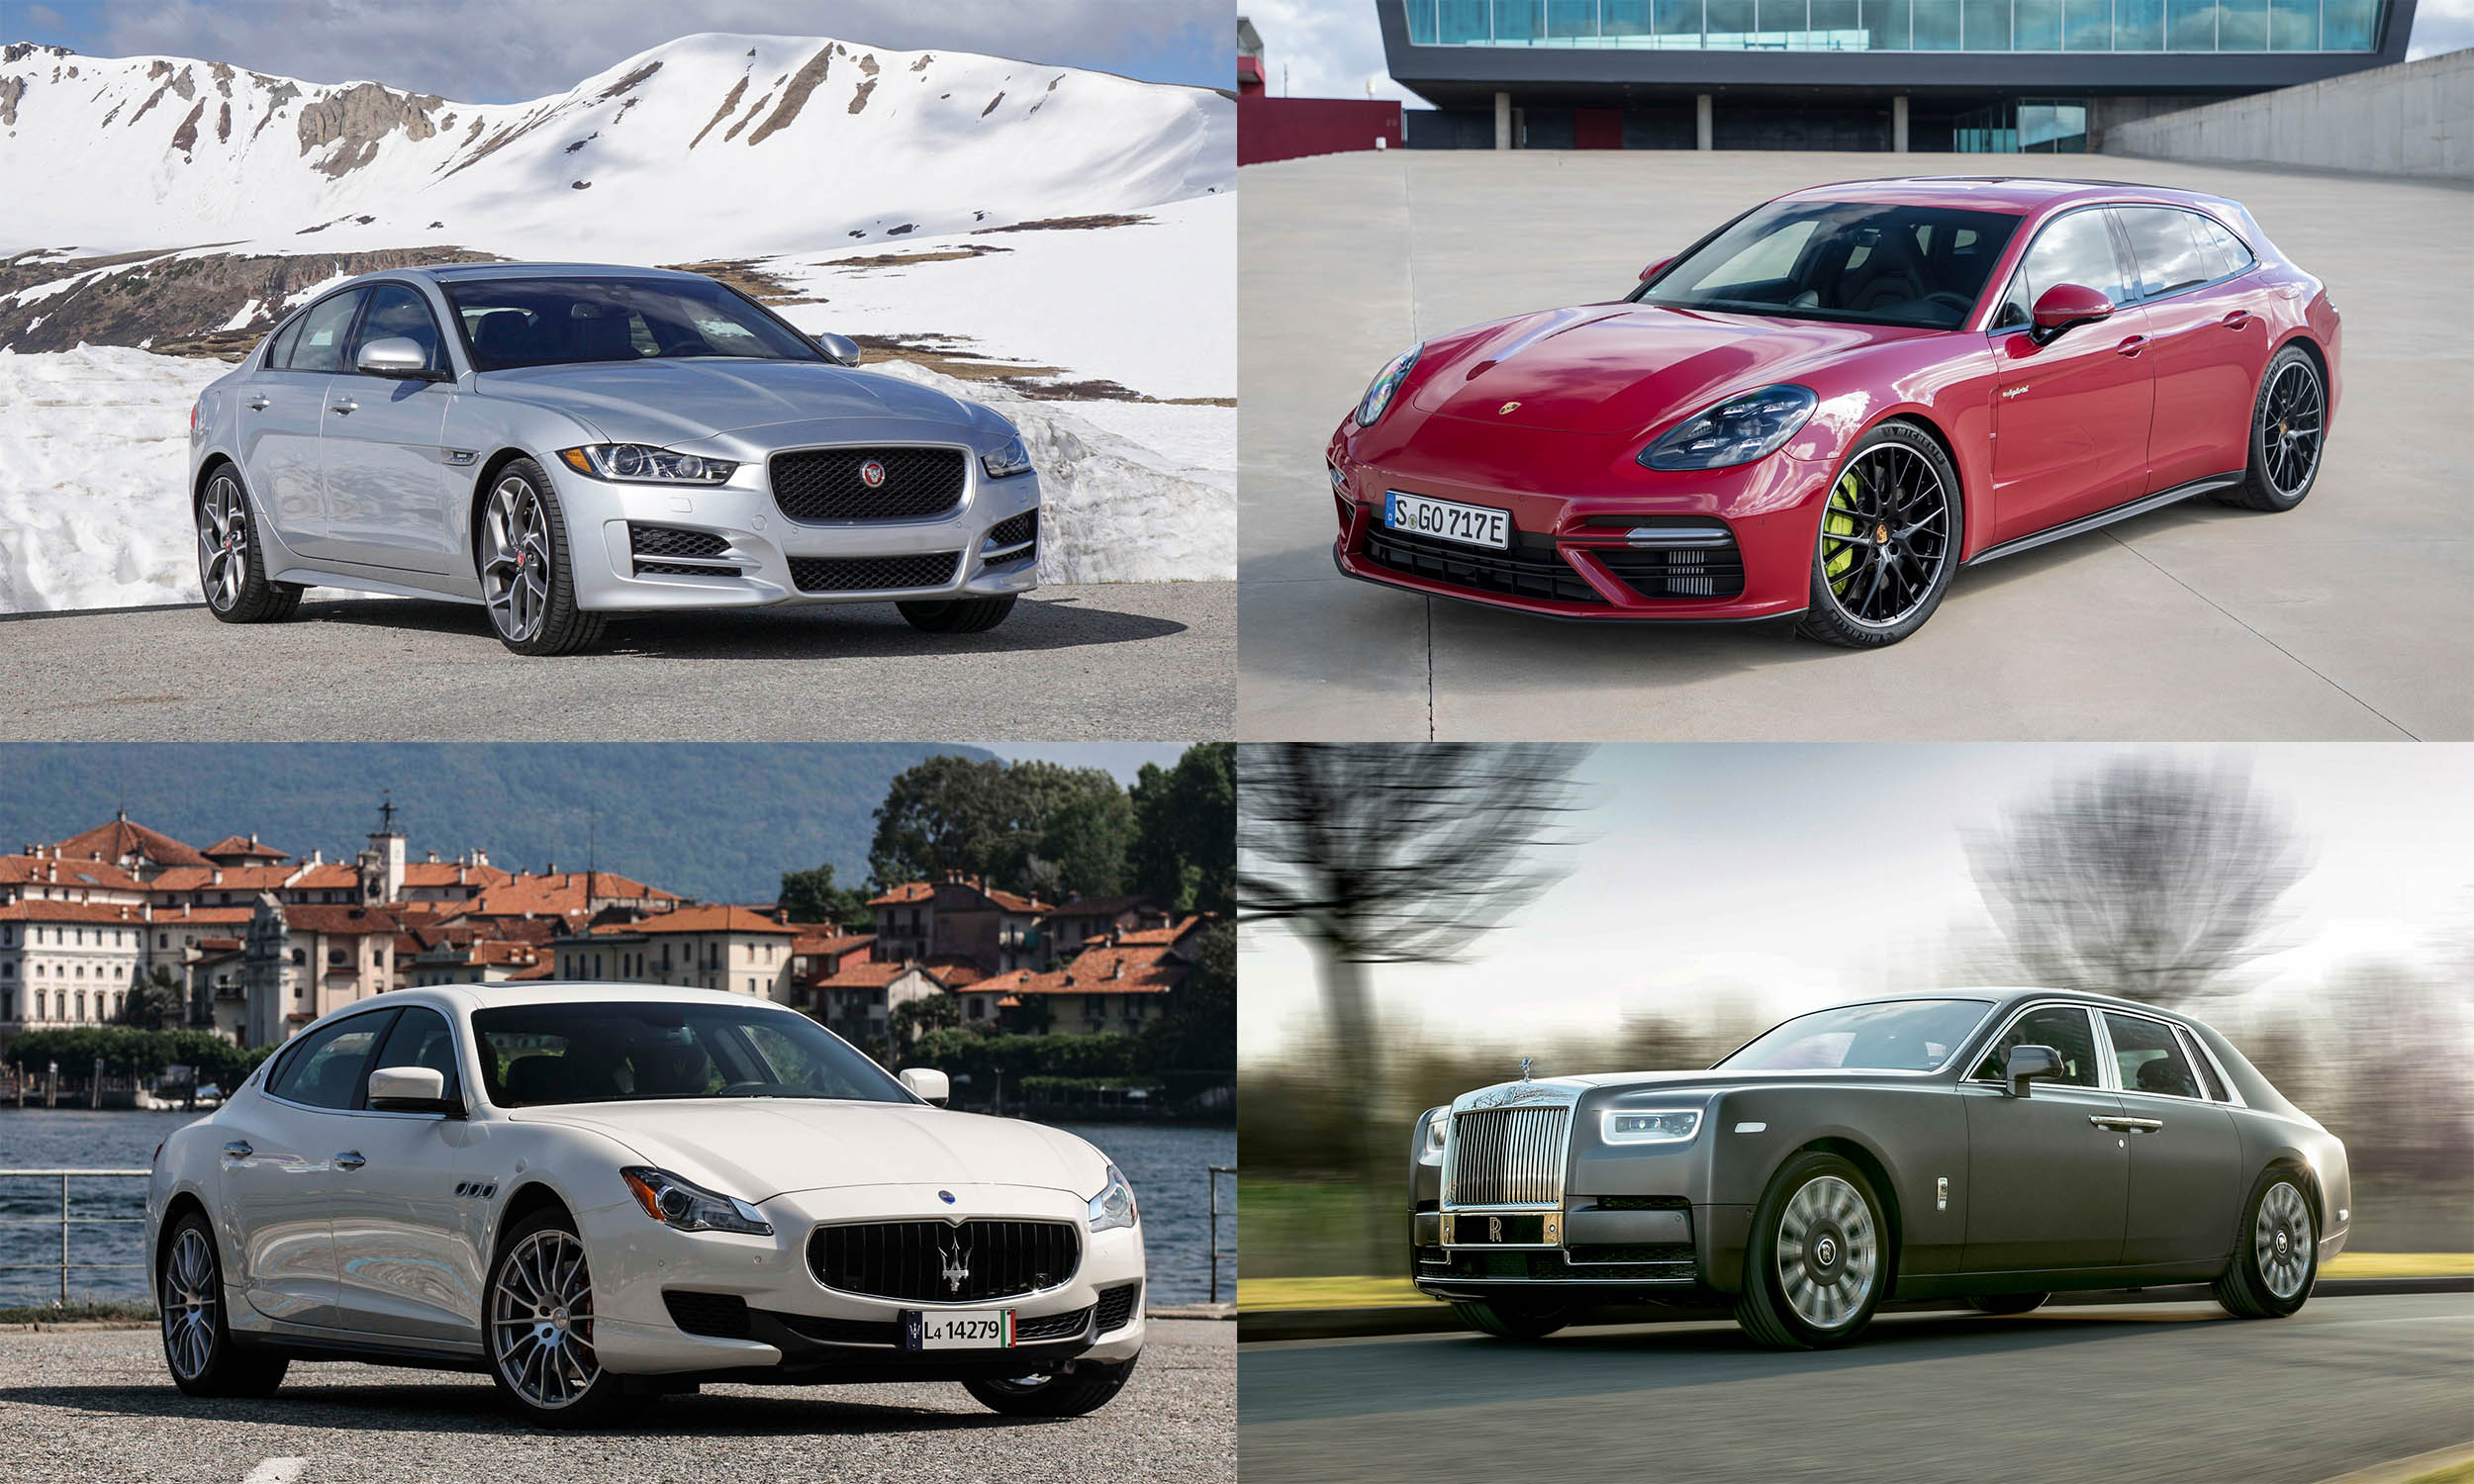 © Perry Stern, Automotive Content Experience, © Jaguar Land Rover, © Porsche Cars North America, © BMW AG